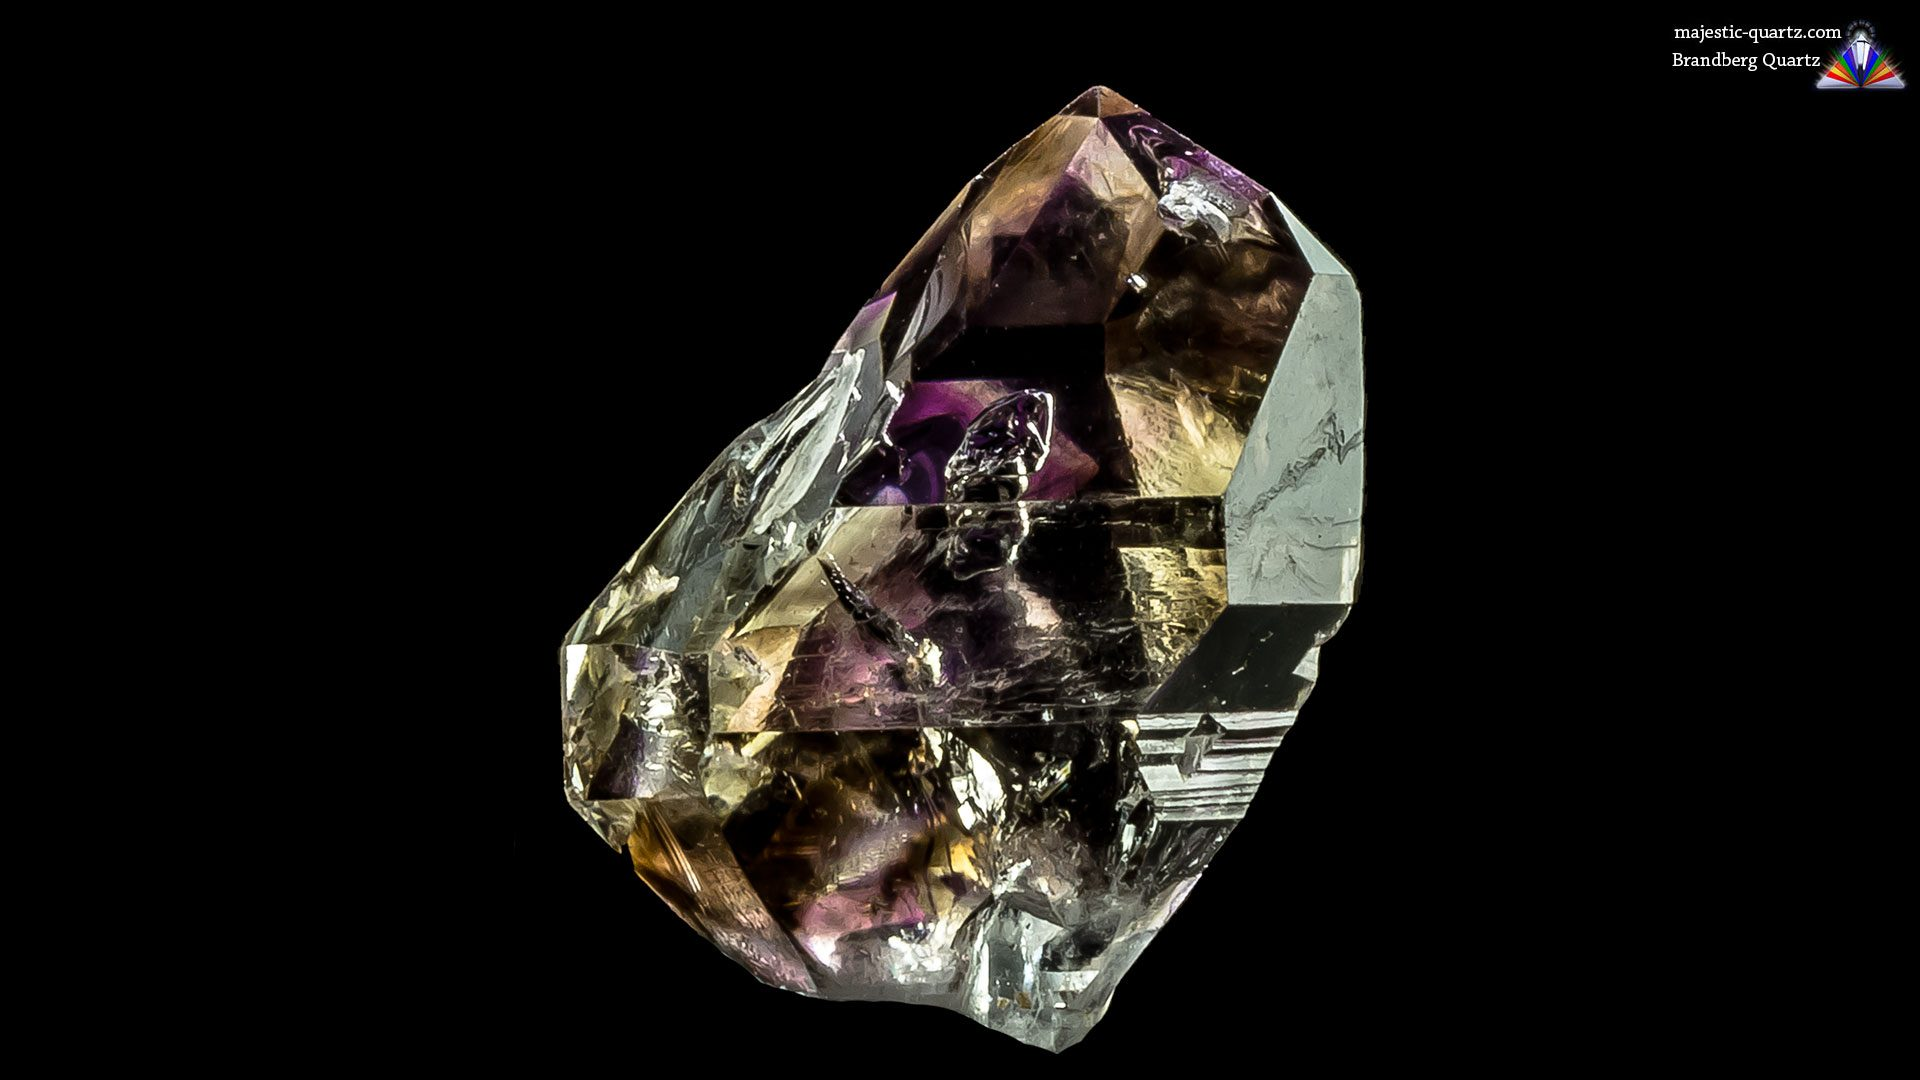 Brandberg Quartz Crystal - Photograph By Anthony Bradford